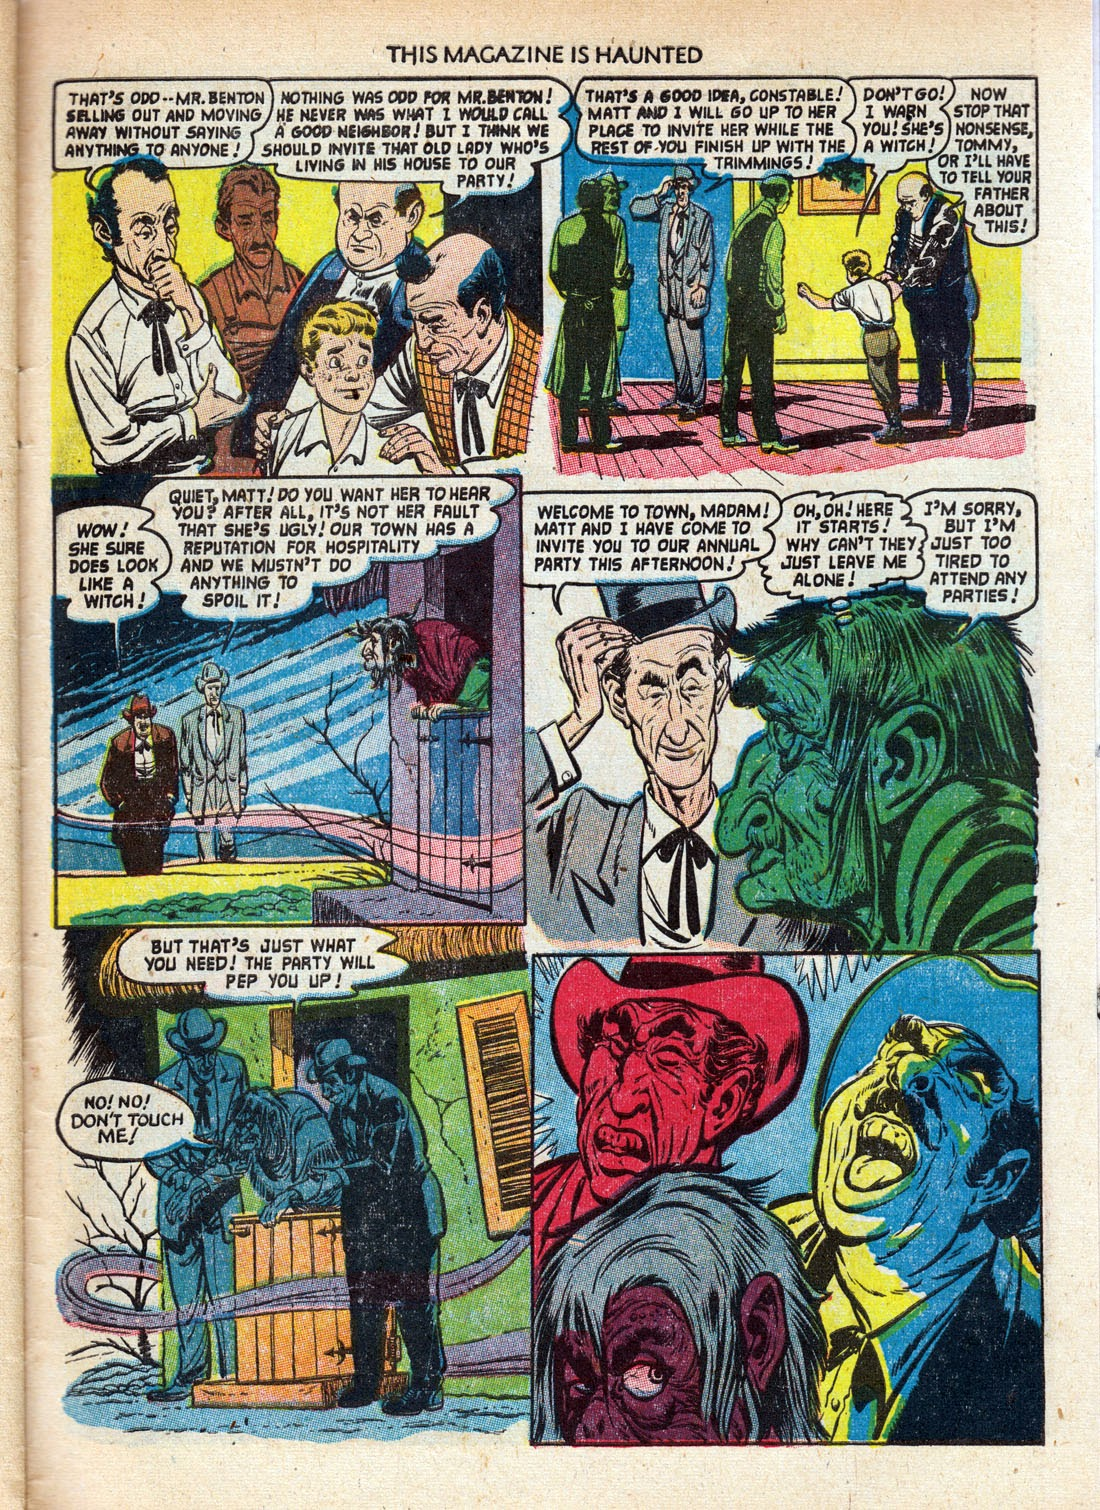 Read online This Magazine Is Haunted comic -  Issue #11 - 31